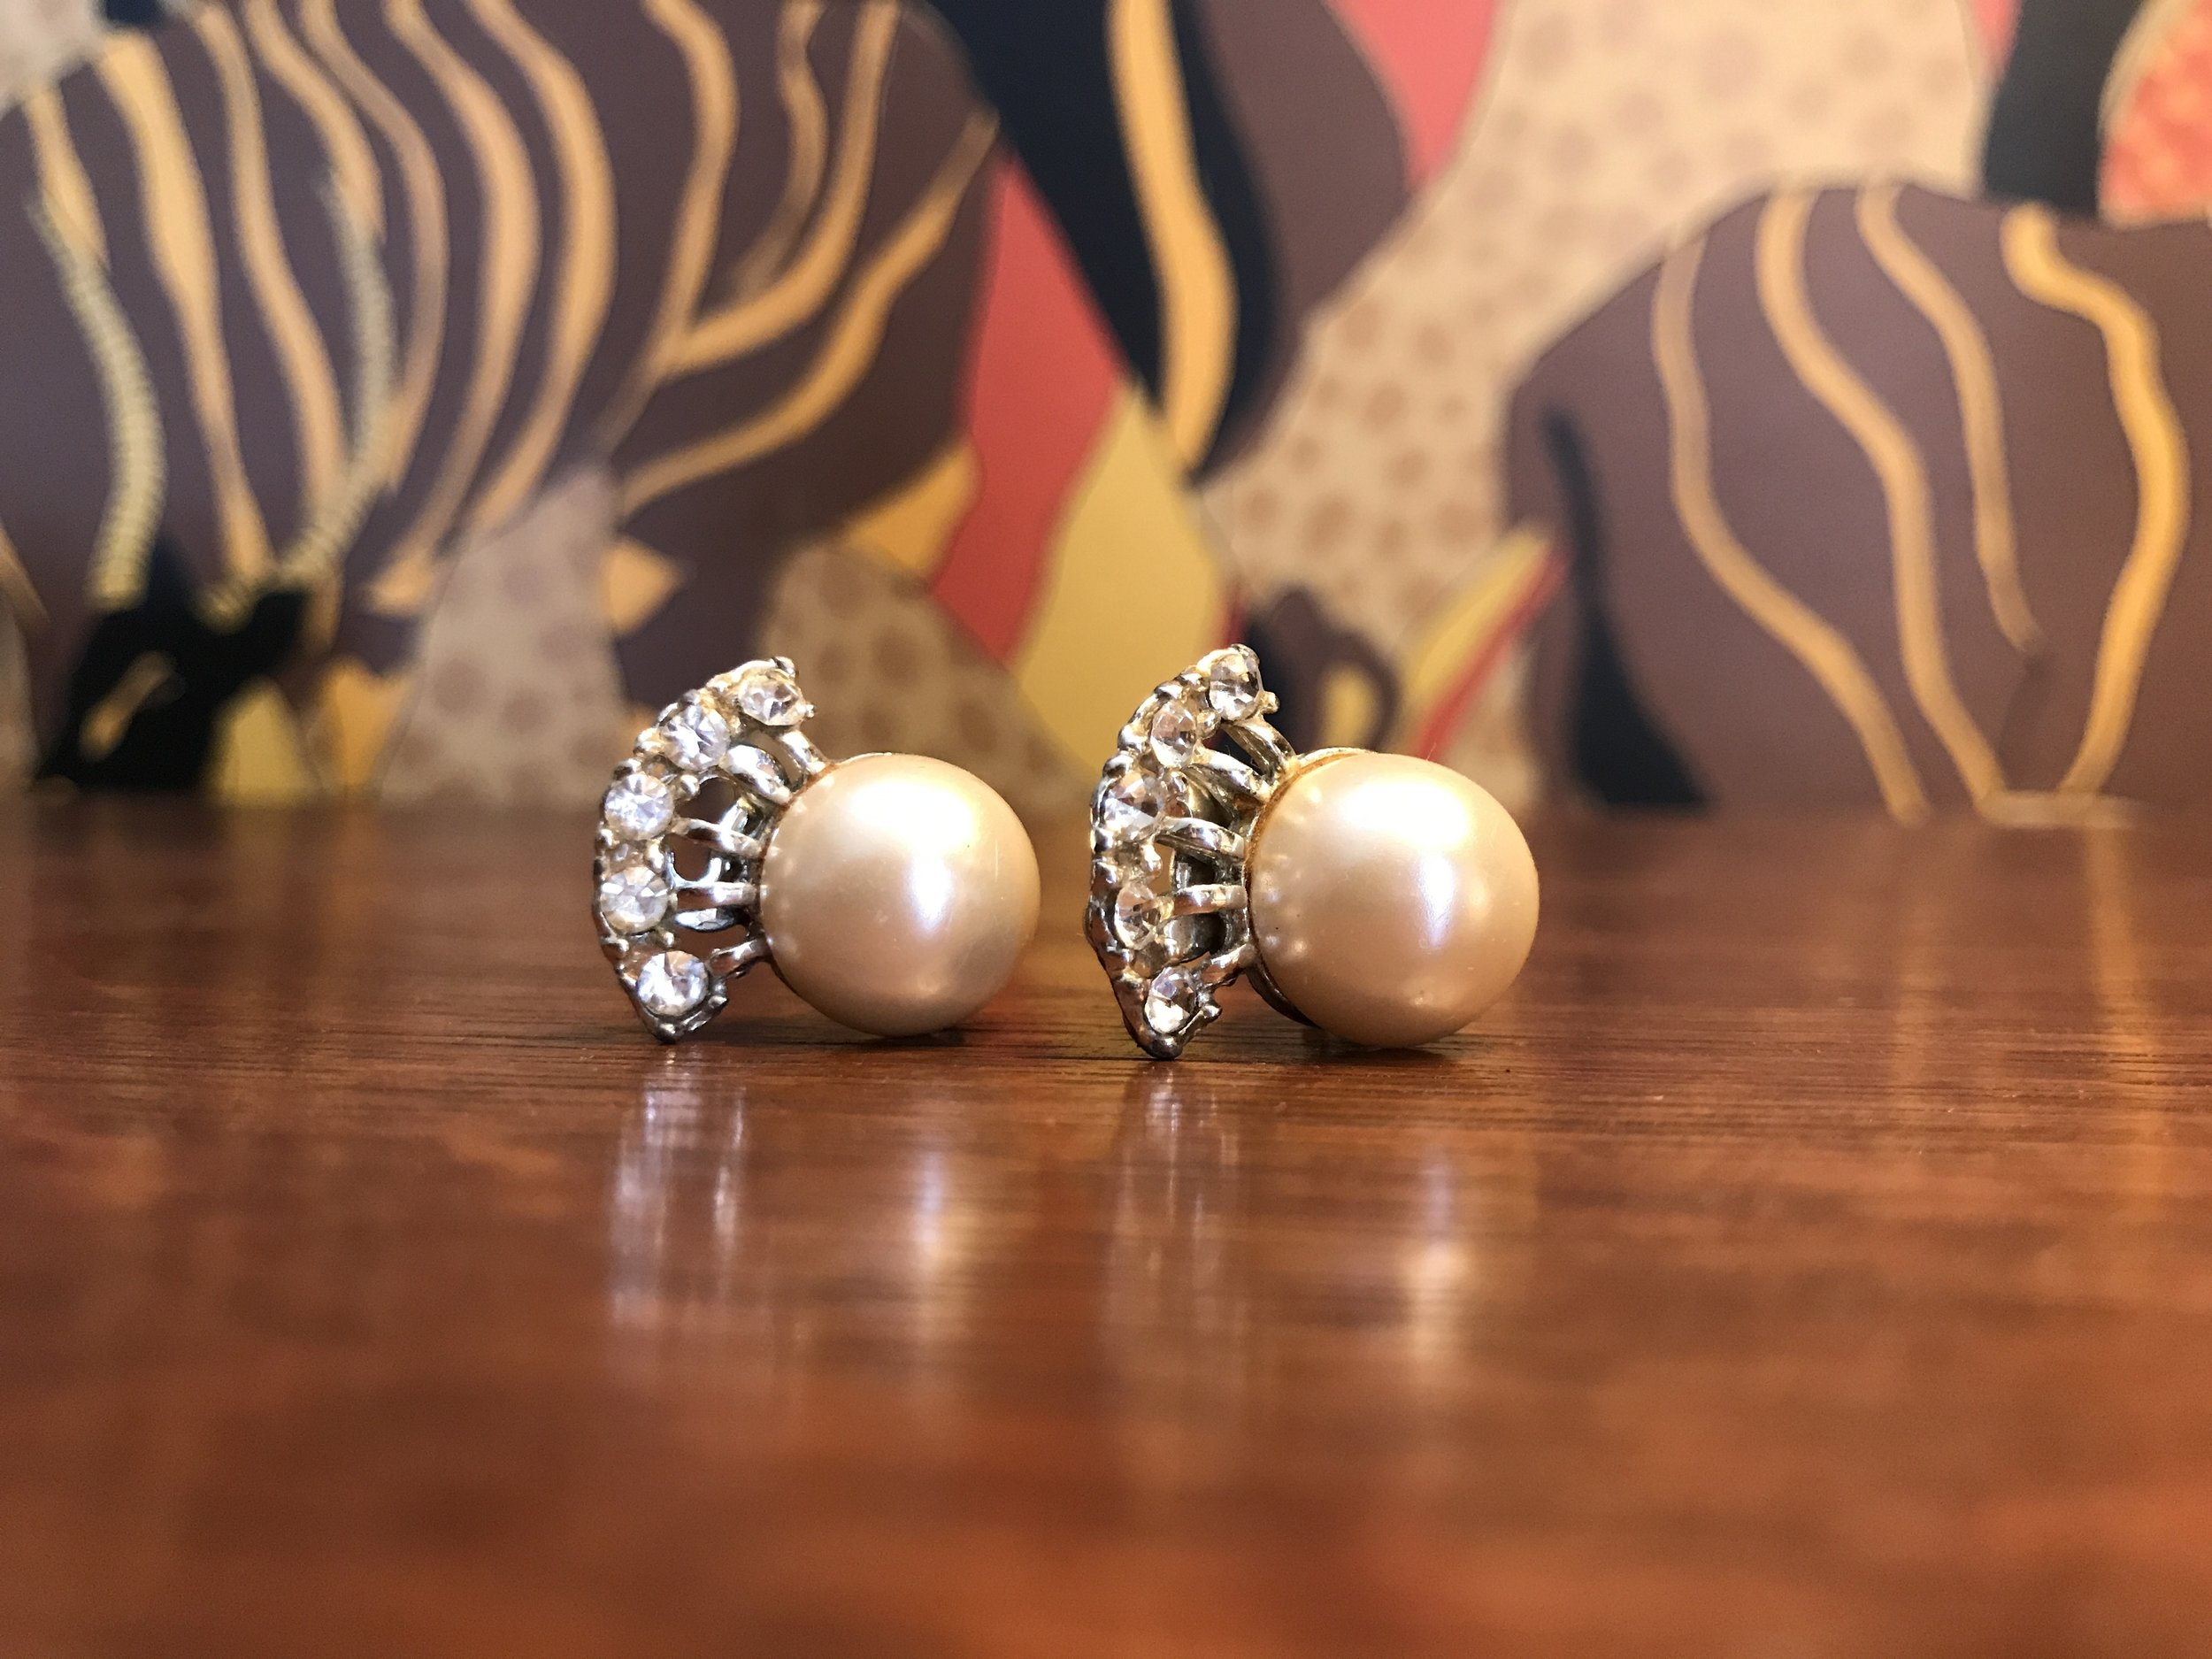 Pearl & Rhinestone Earrings - When worn, rhinestones sit above the pearls. Blanche liked to keep herself well-adorned.$26